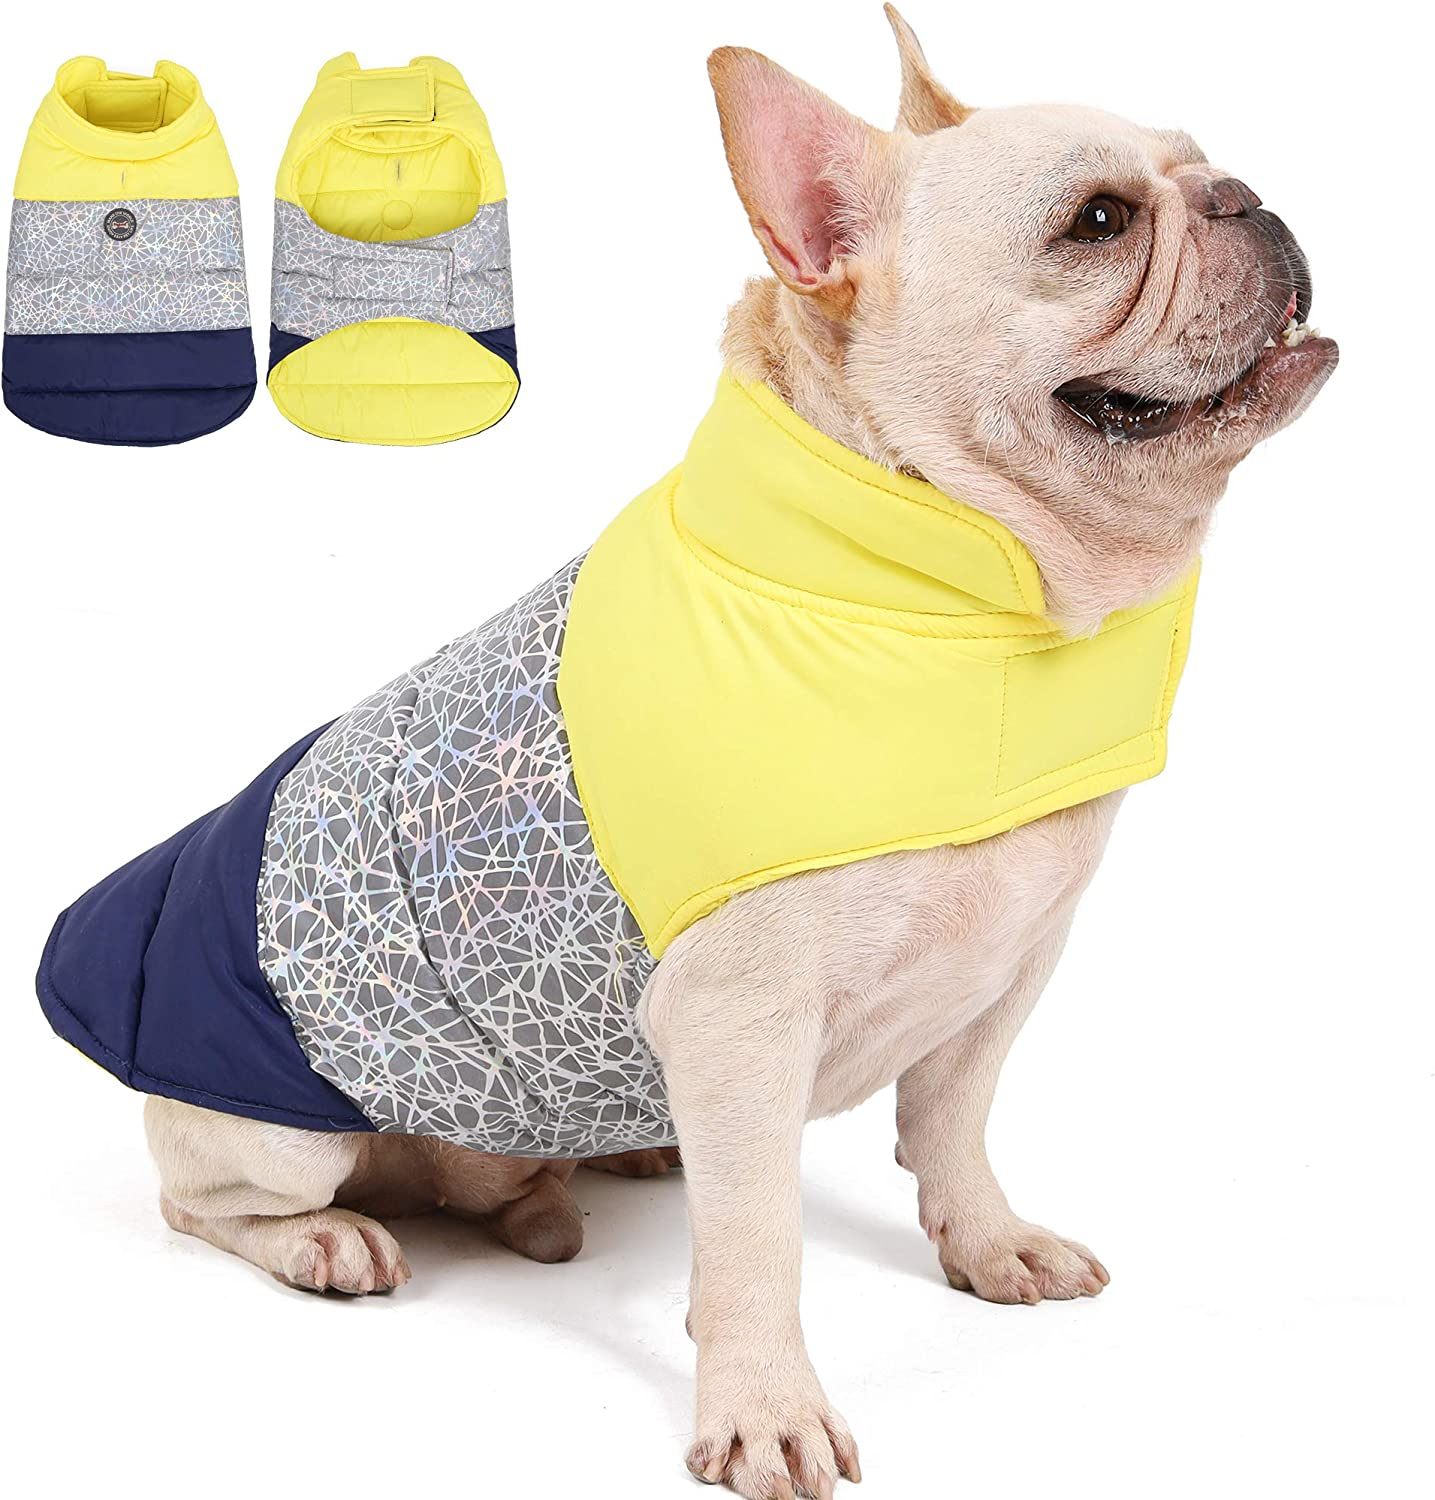 Colorful Dog Directly managed store Winter Jacket Reversible Ranking integrated 1st place for Cold Smal Weather Coat